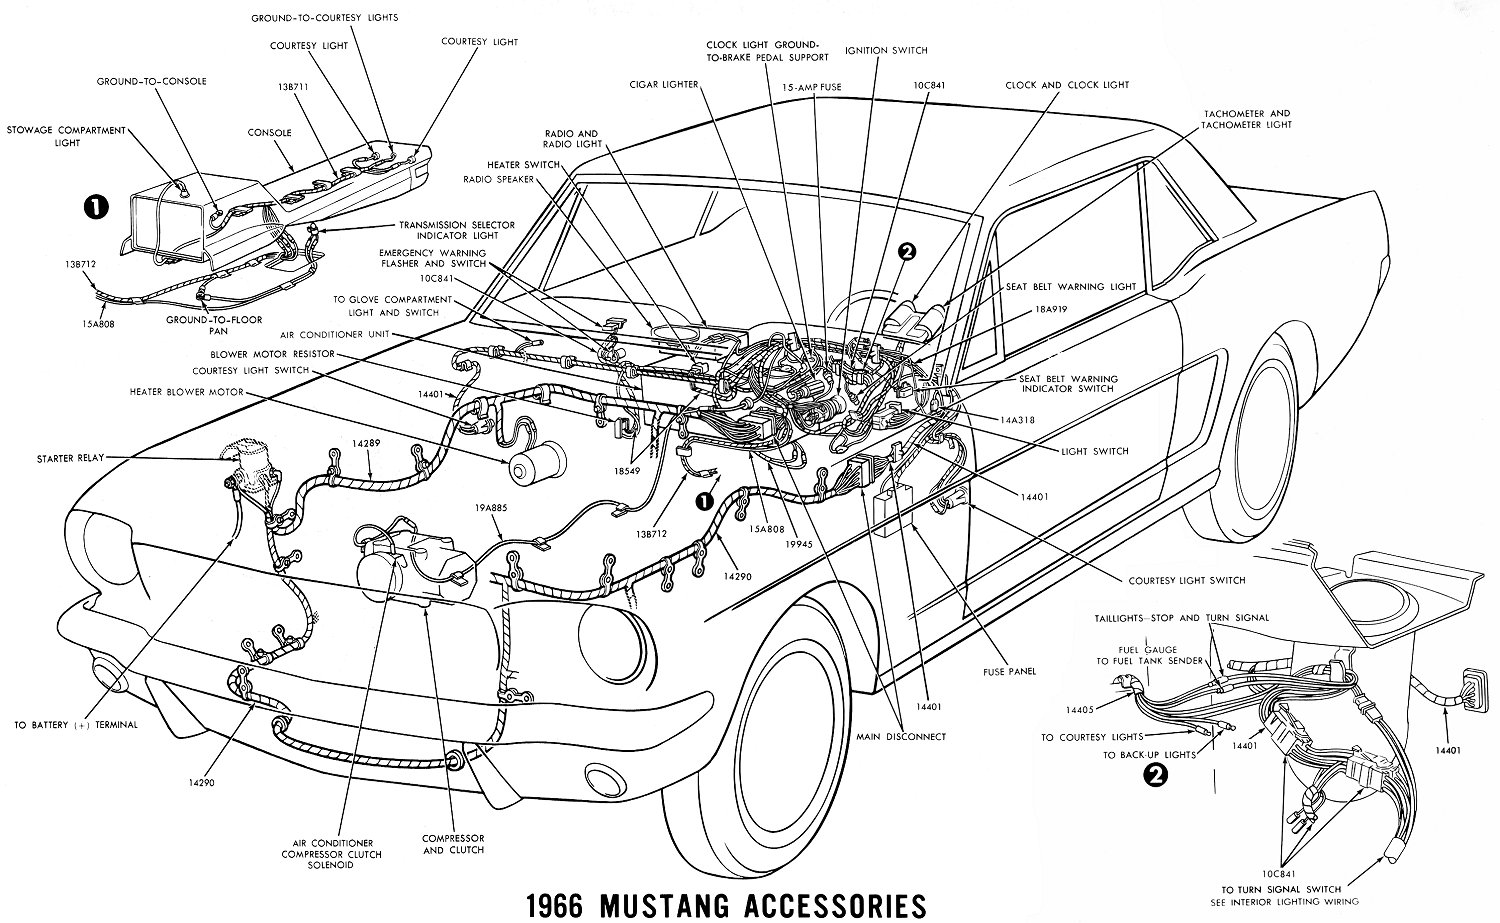 66acces 1966 mustang wiring diagrams average joe restoration 1966 mustang wiring diagrams at webbmarketing.co